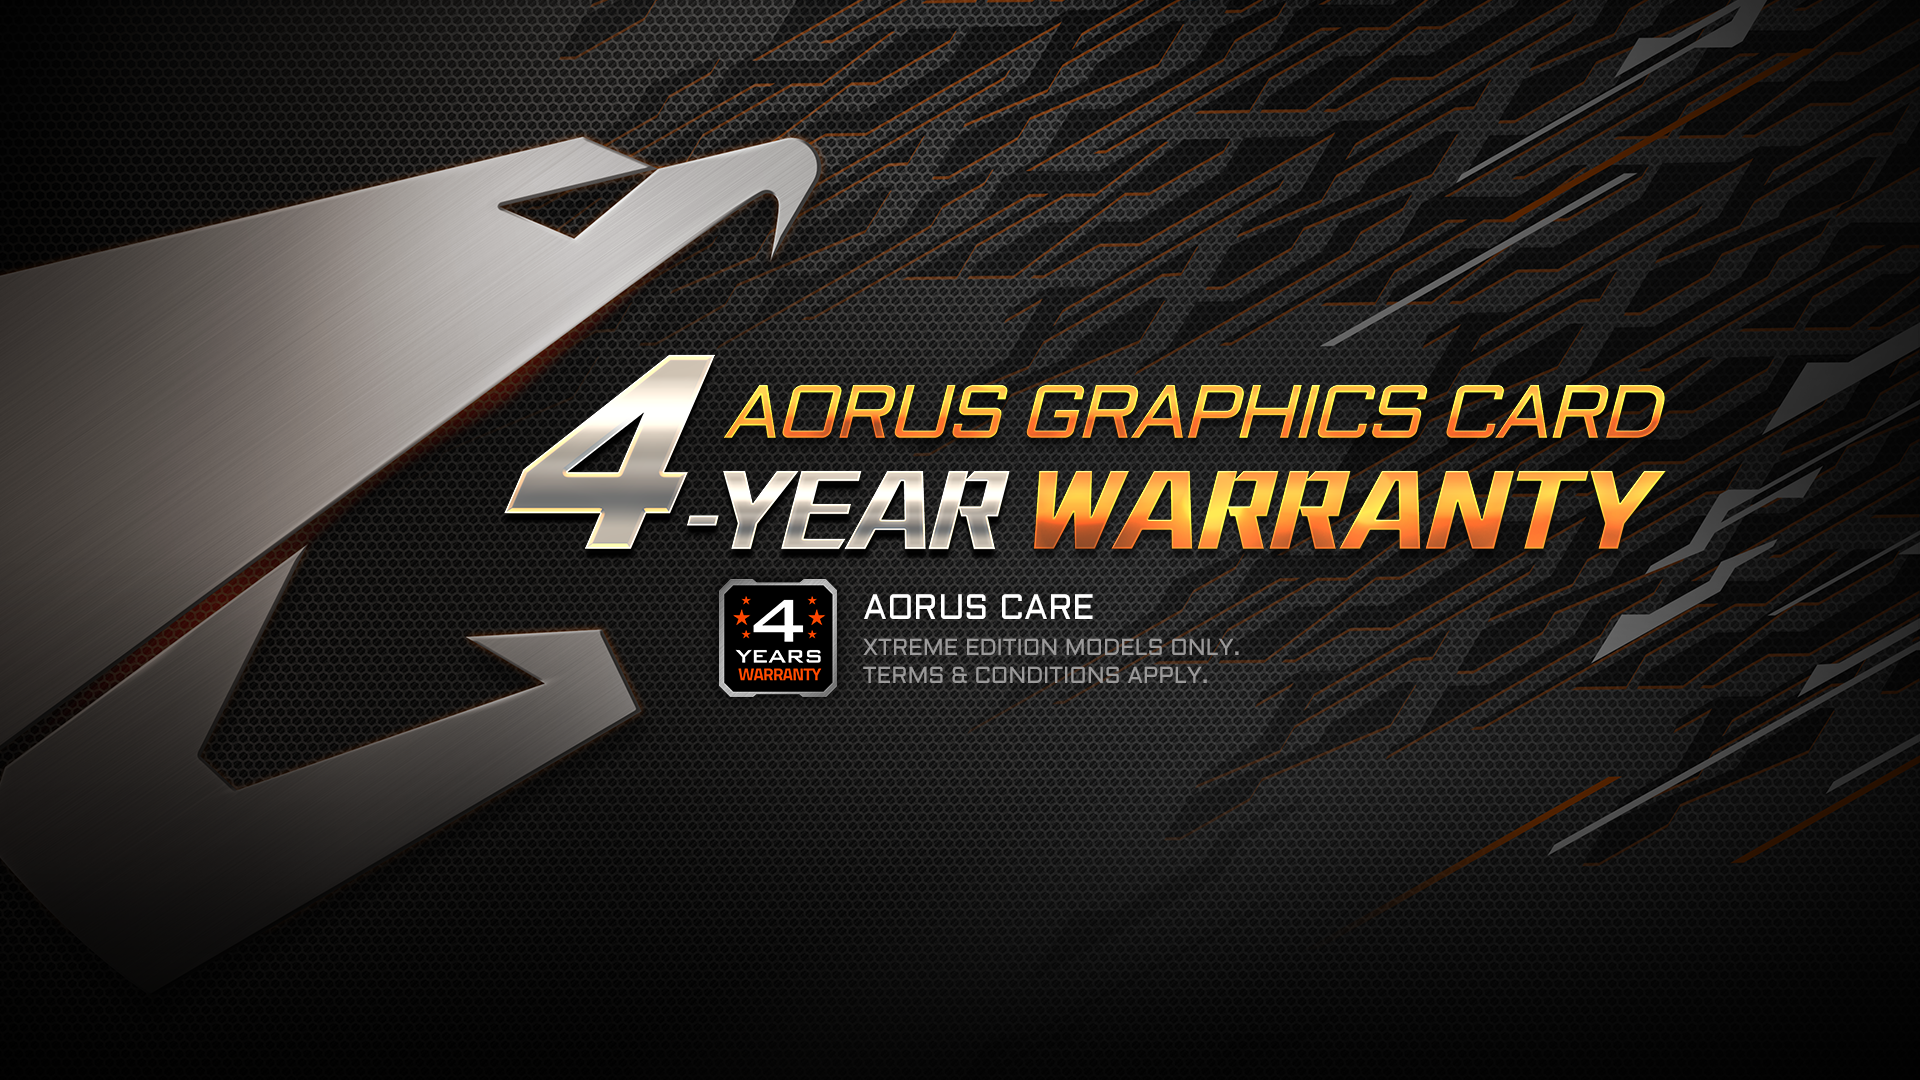 Register Your Aorus Xtreme Edition And Gigabyte Xtreme Gaming Graphics Card And Receive The Privilege Of  Year Warranty For Your Investment